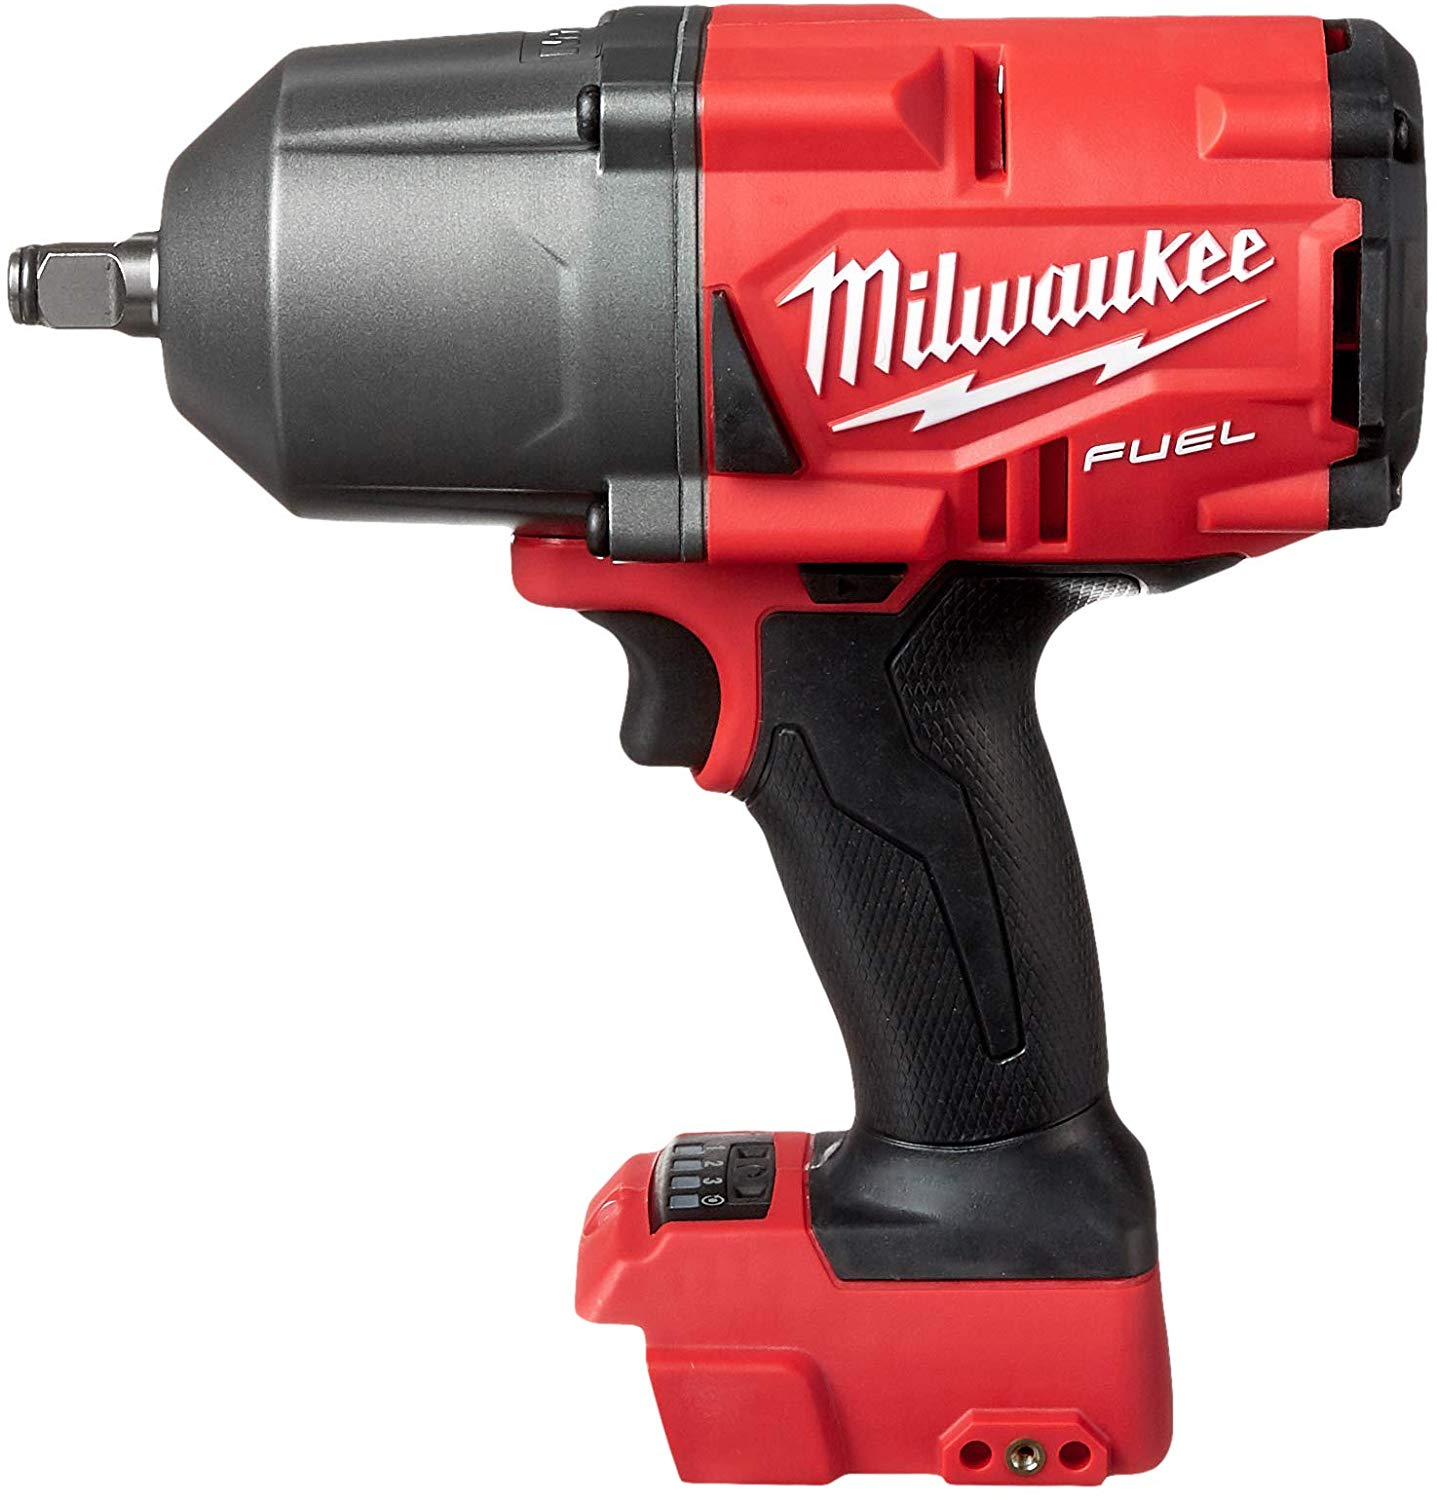 Top impact wrench